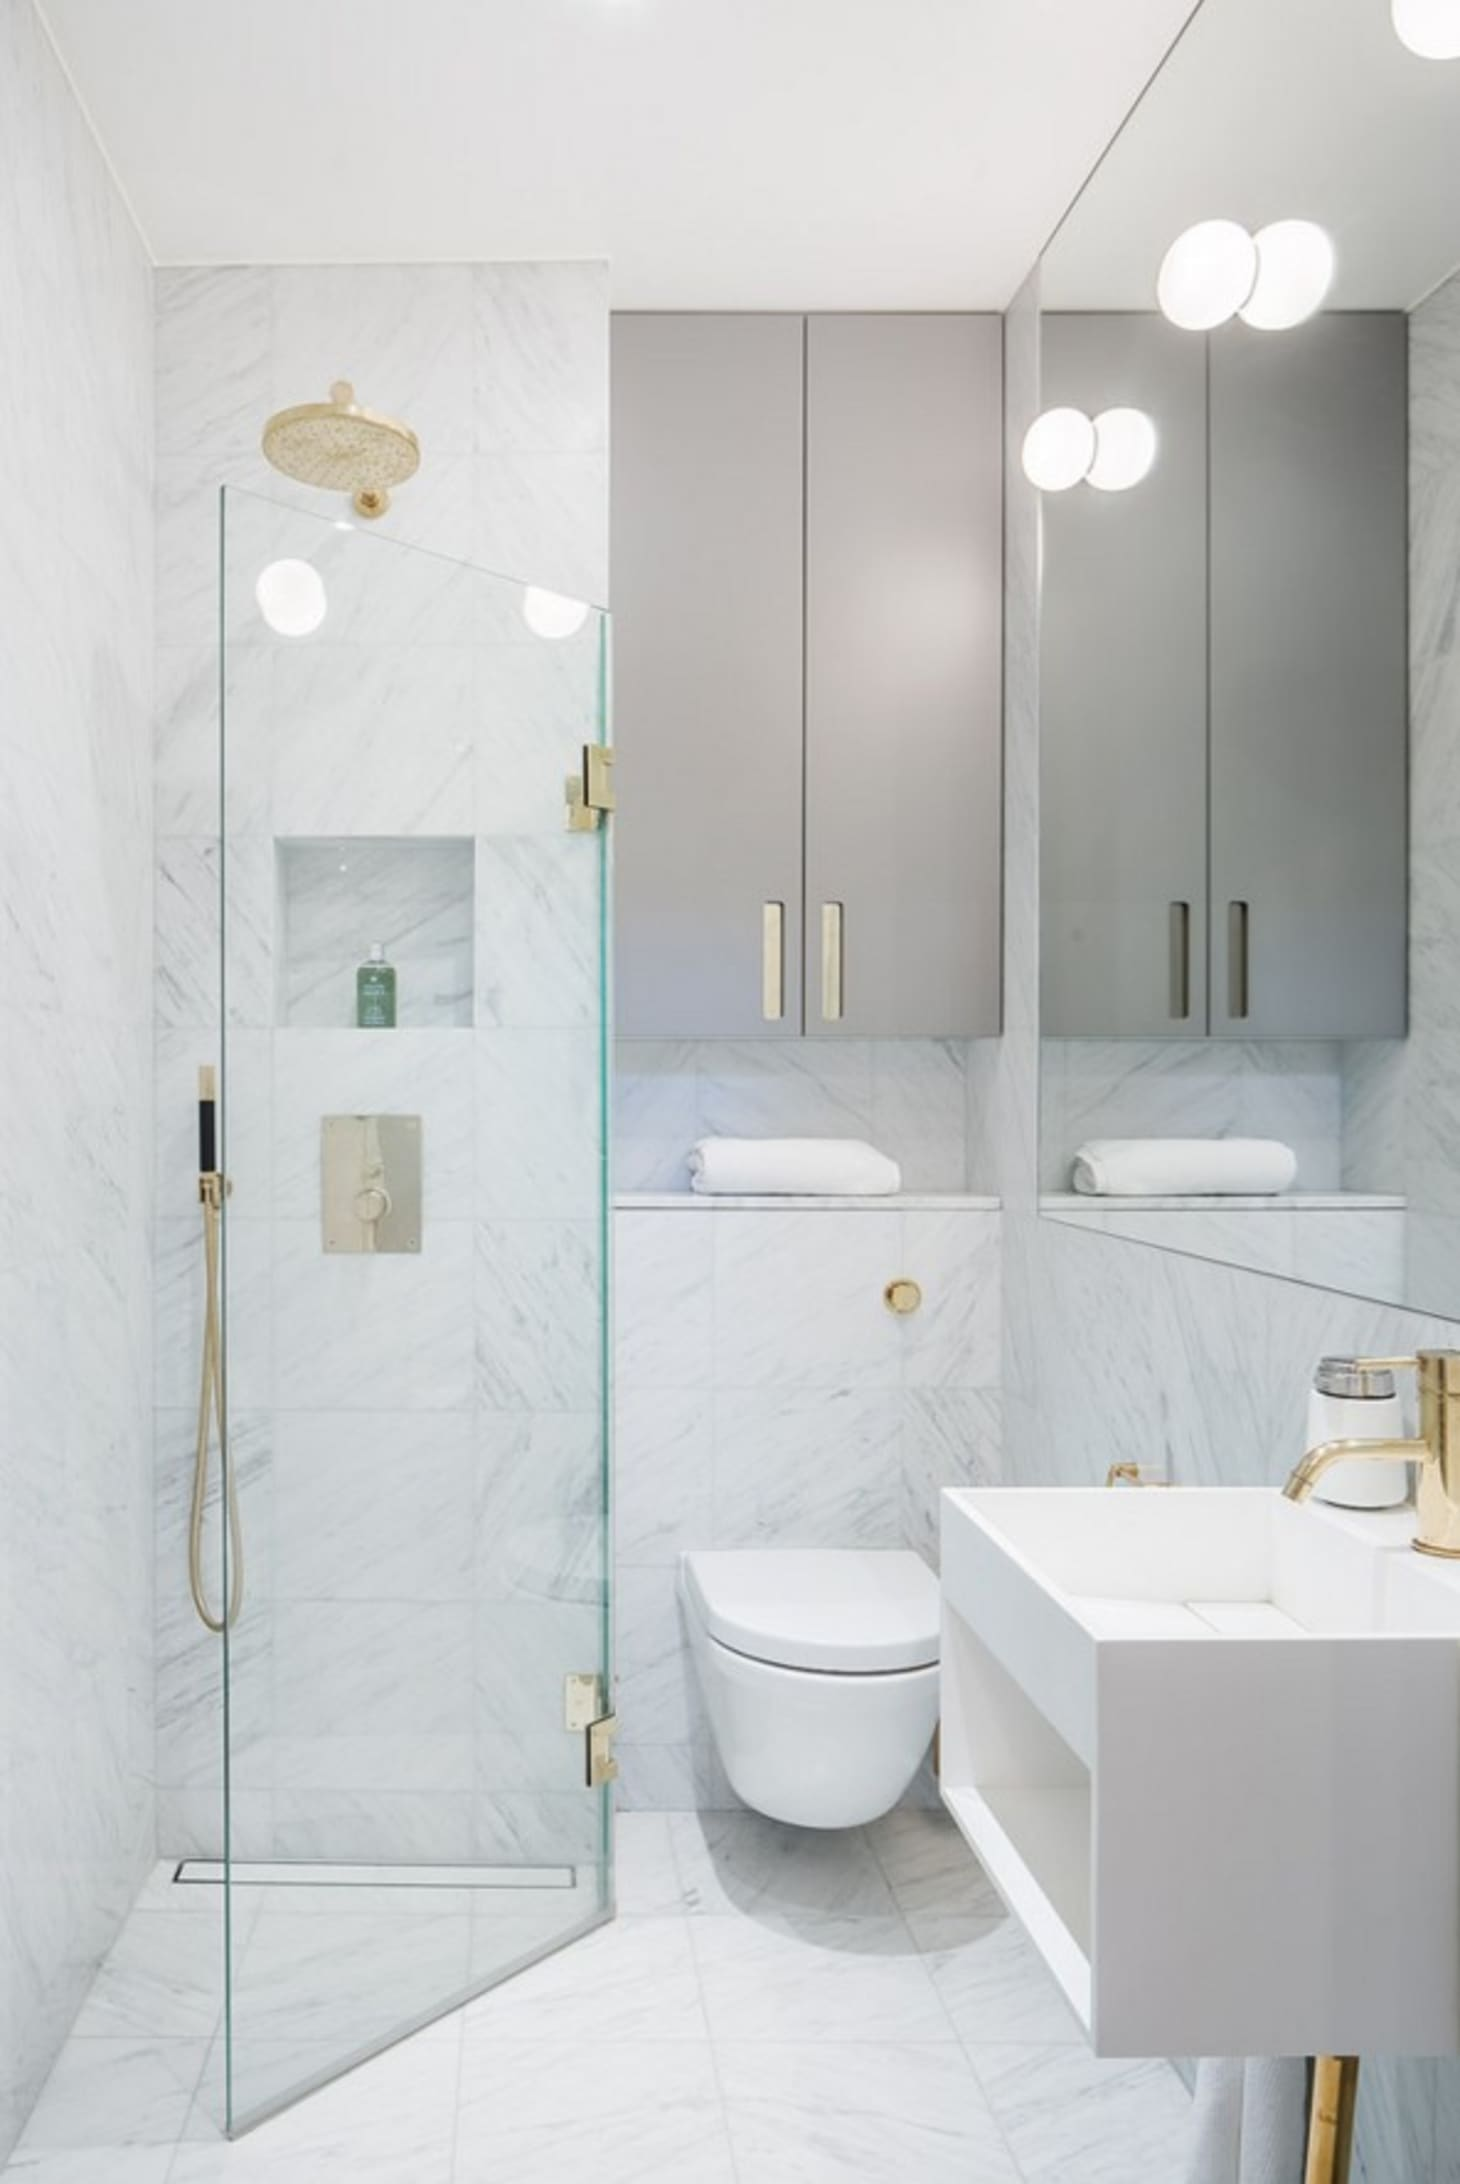 Stylish Remodeling Ideas for Small Bathrooms | Apartment ... on Small Apartment Bathroom  id=12099